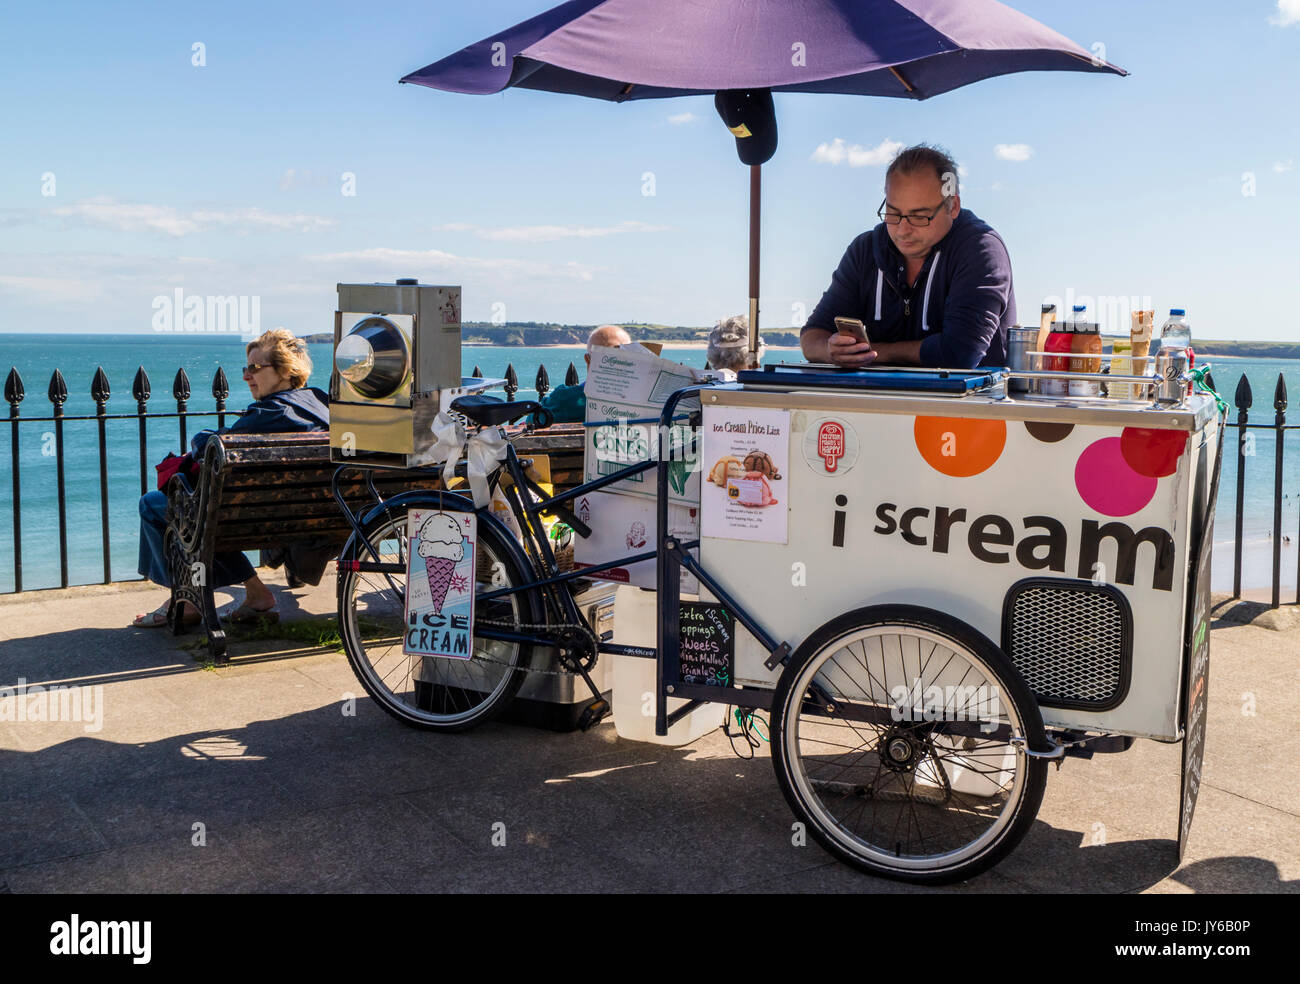 A man selling ice cream from a bicycle on the sea front in Tenby, Wales - Stock Image